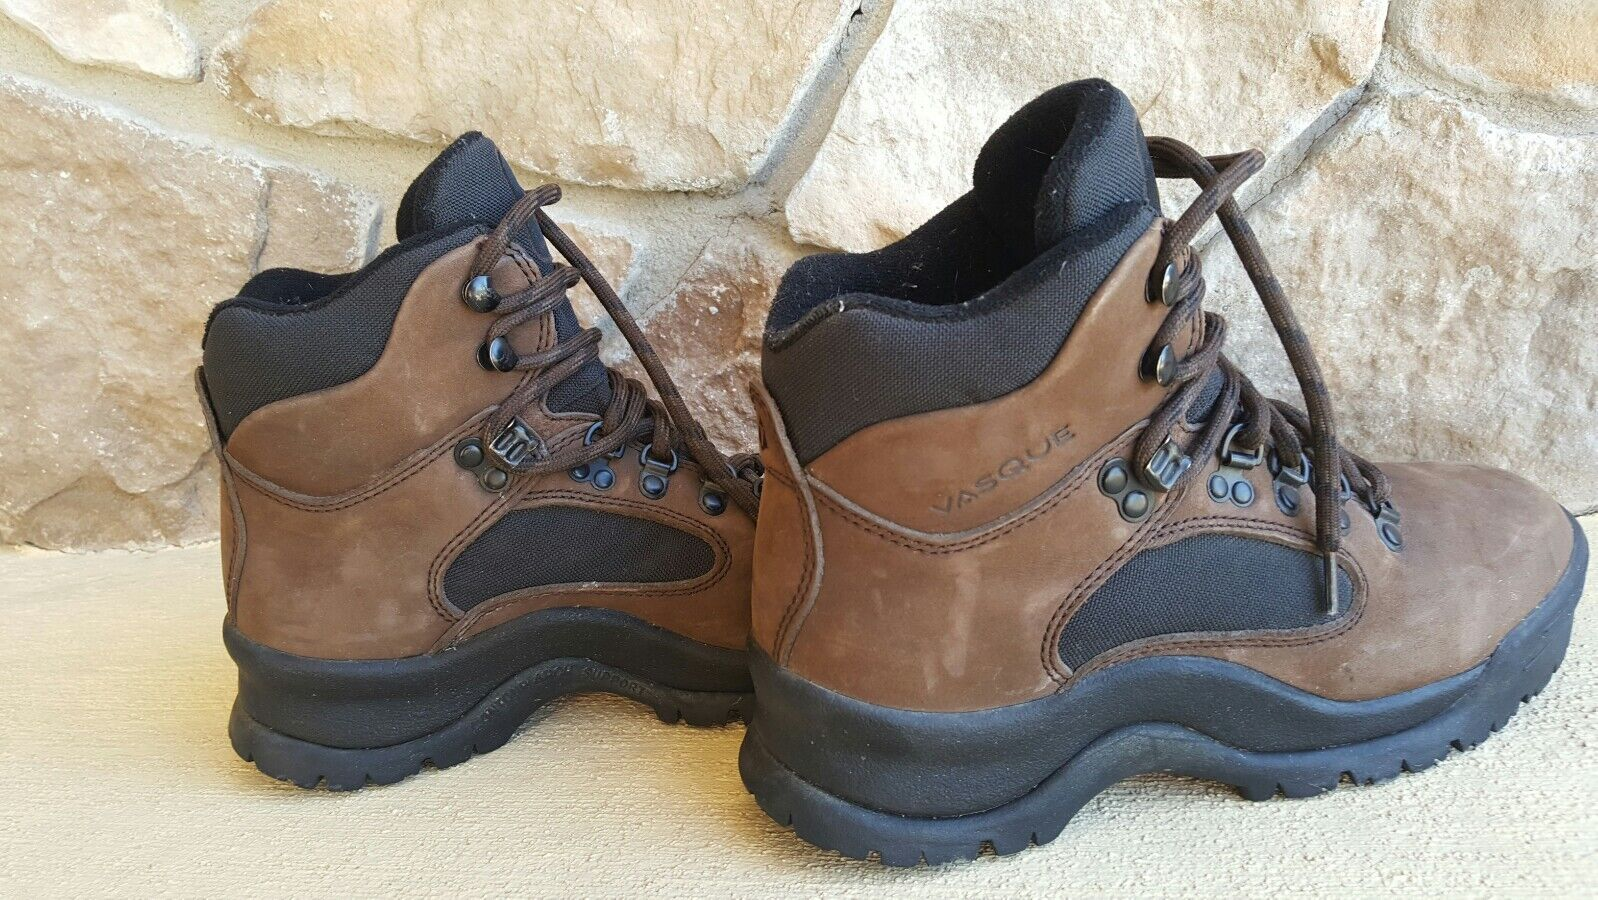 Size 7.5 7.5 7.5 M Vasque Donna hiking stivali be7e92